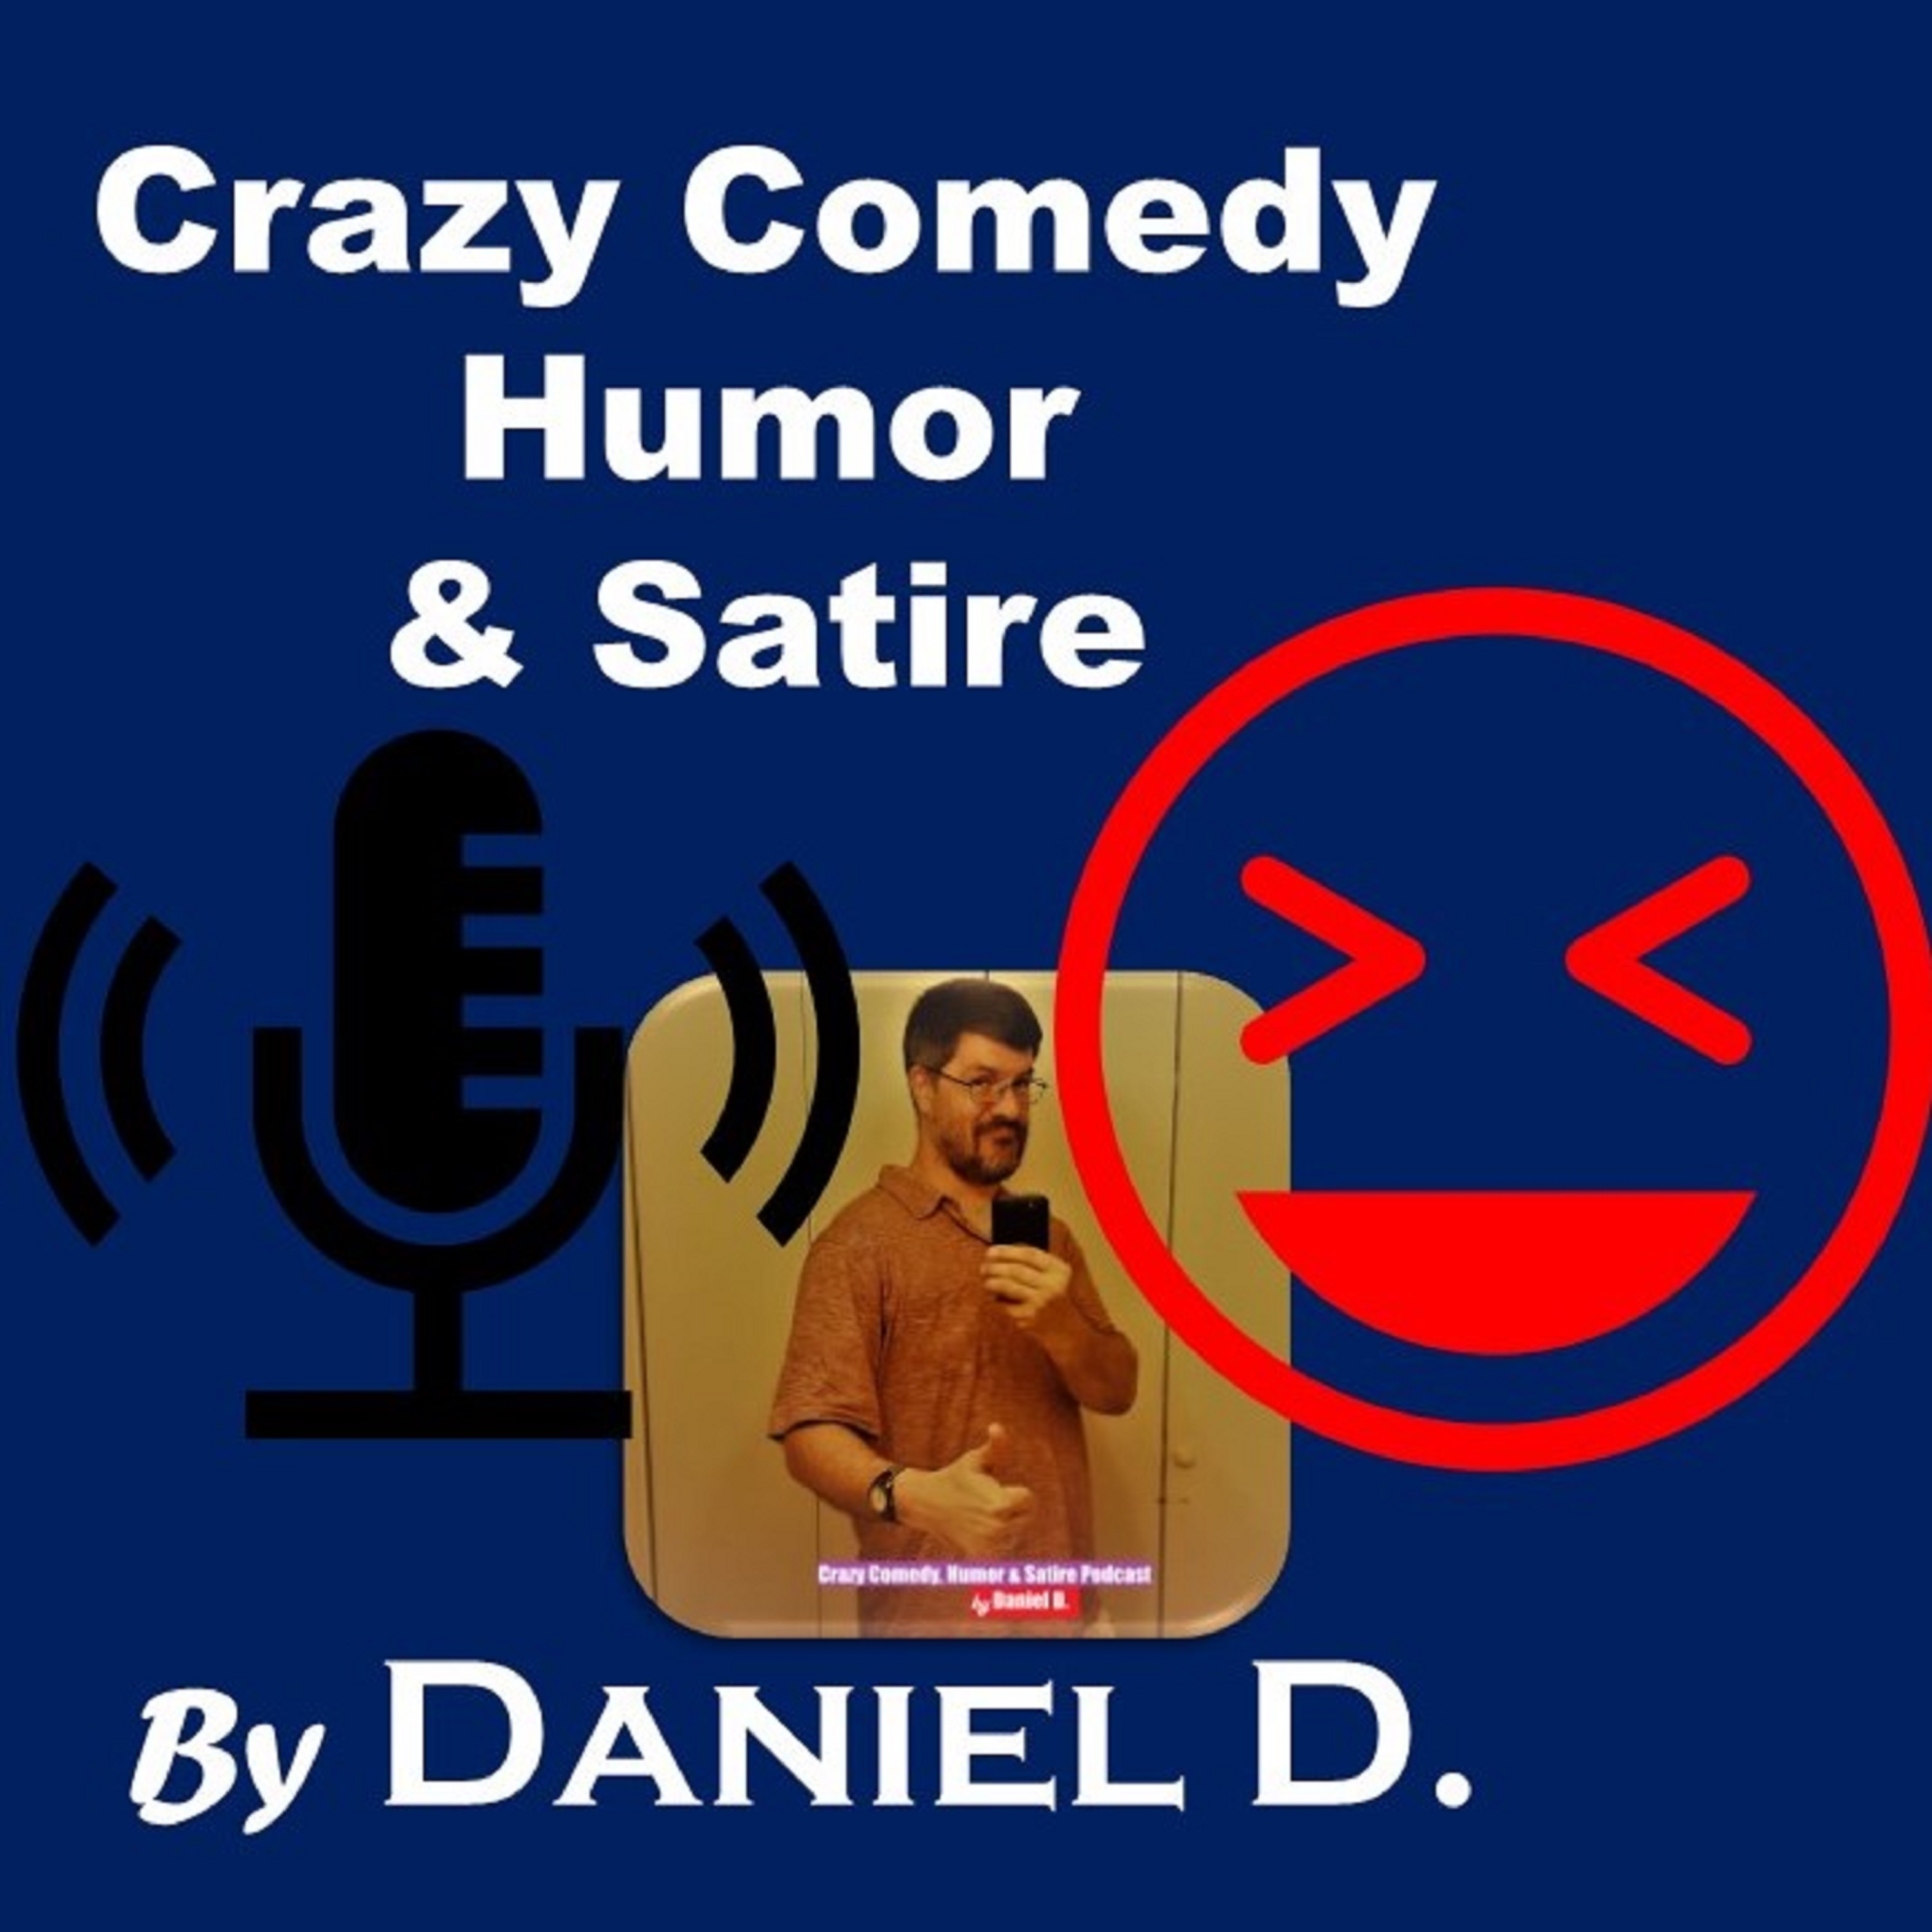 Artwork for Episode 48 of The Crazy Comedy, Humor & Satire Podcast